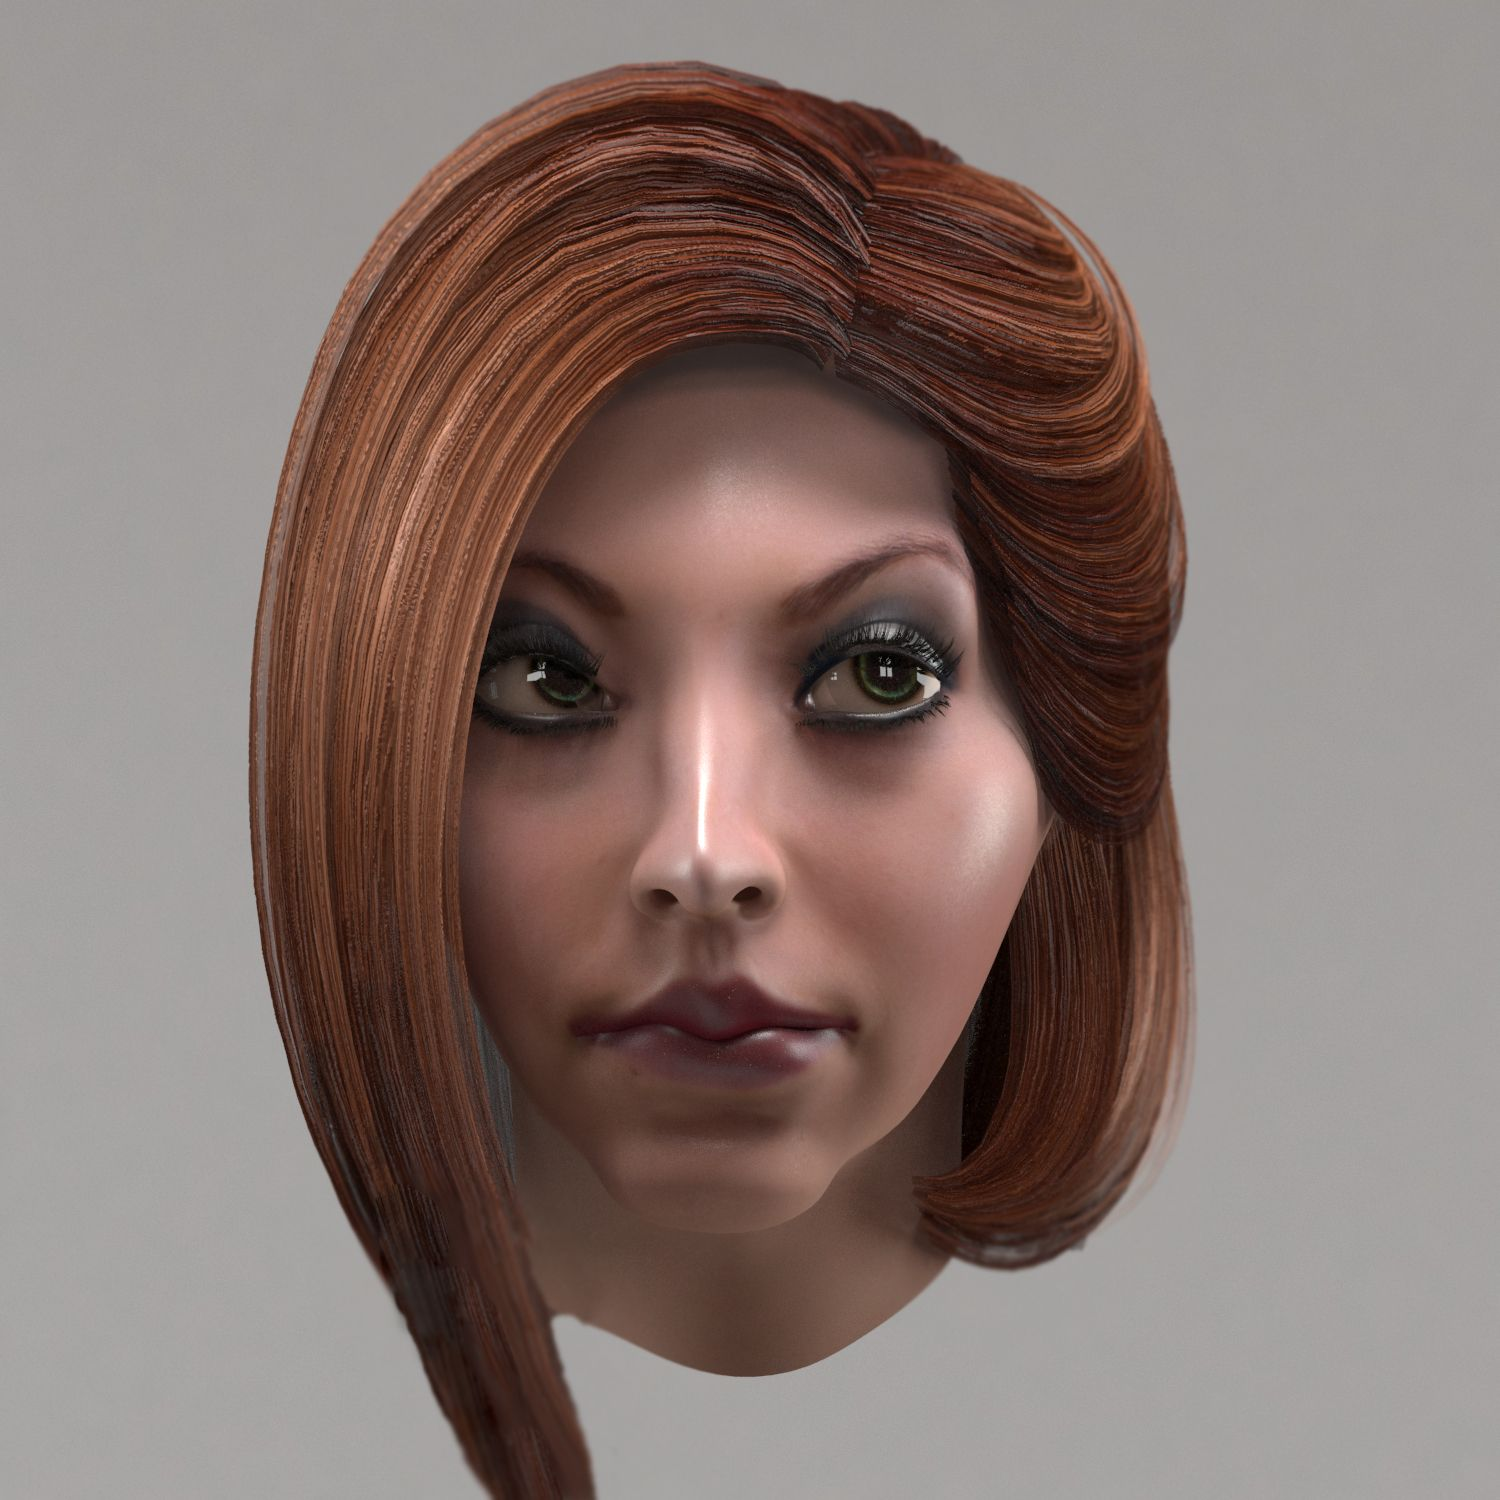 Female Hair 10 Options Low Poly 3d Model Hair Female Model Poly Womens Hairstyles Medium Hair Styles Low Poly 3d Models